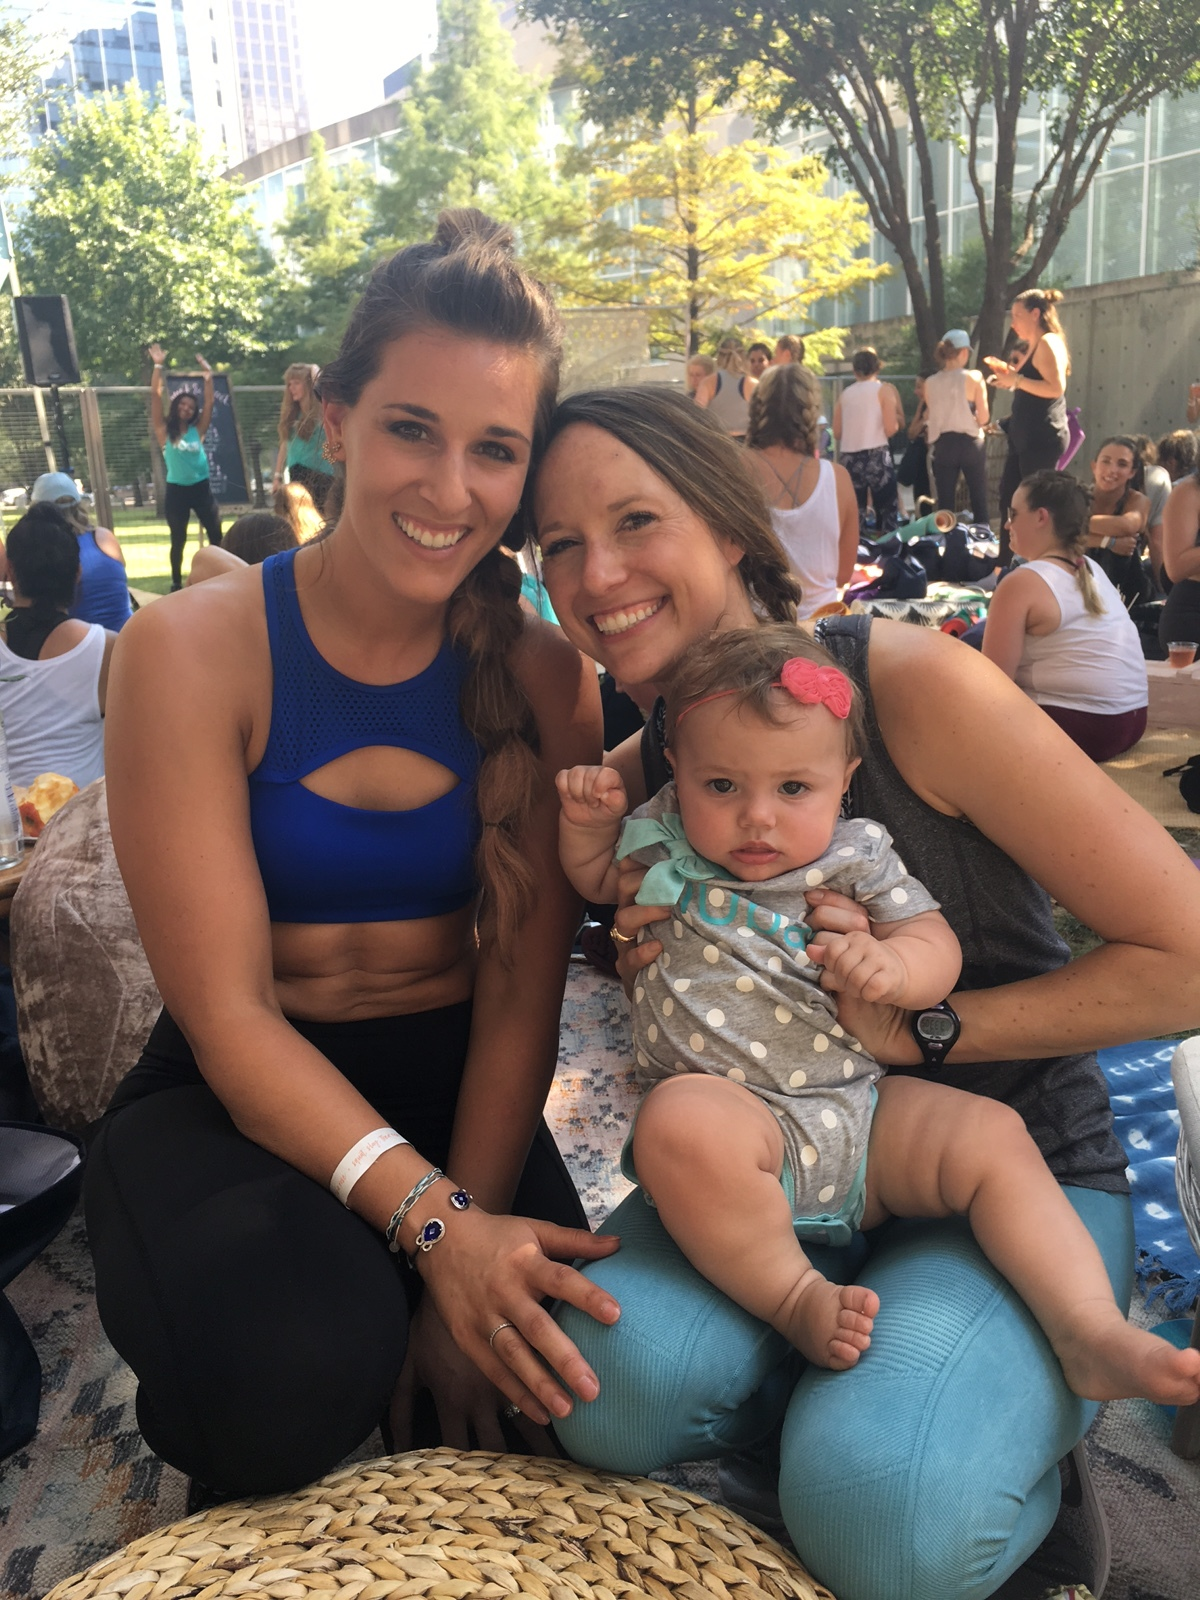 K&K were so sweet to accomdate my dear friend Emily, who couldn't leave her babe for the day!